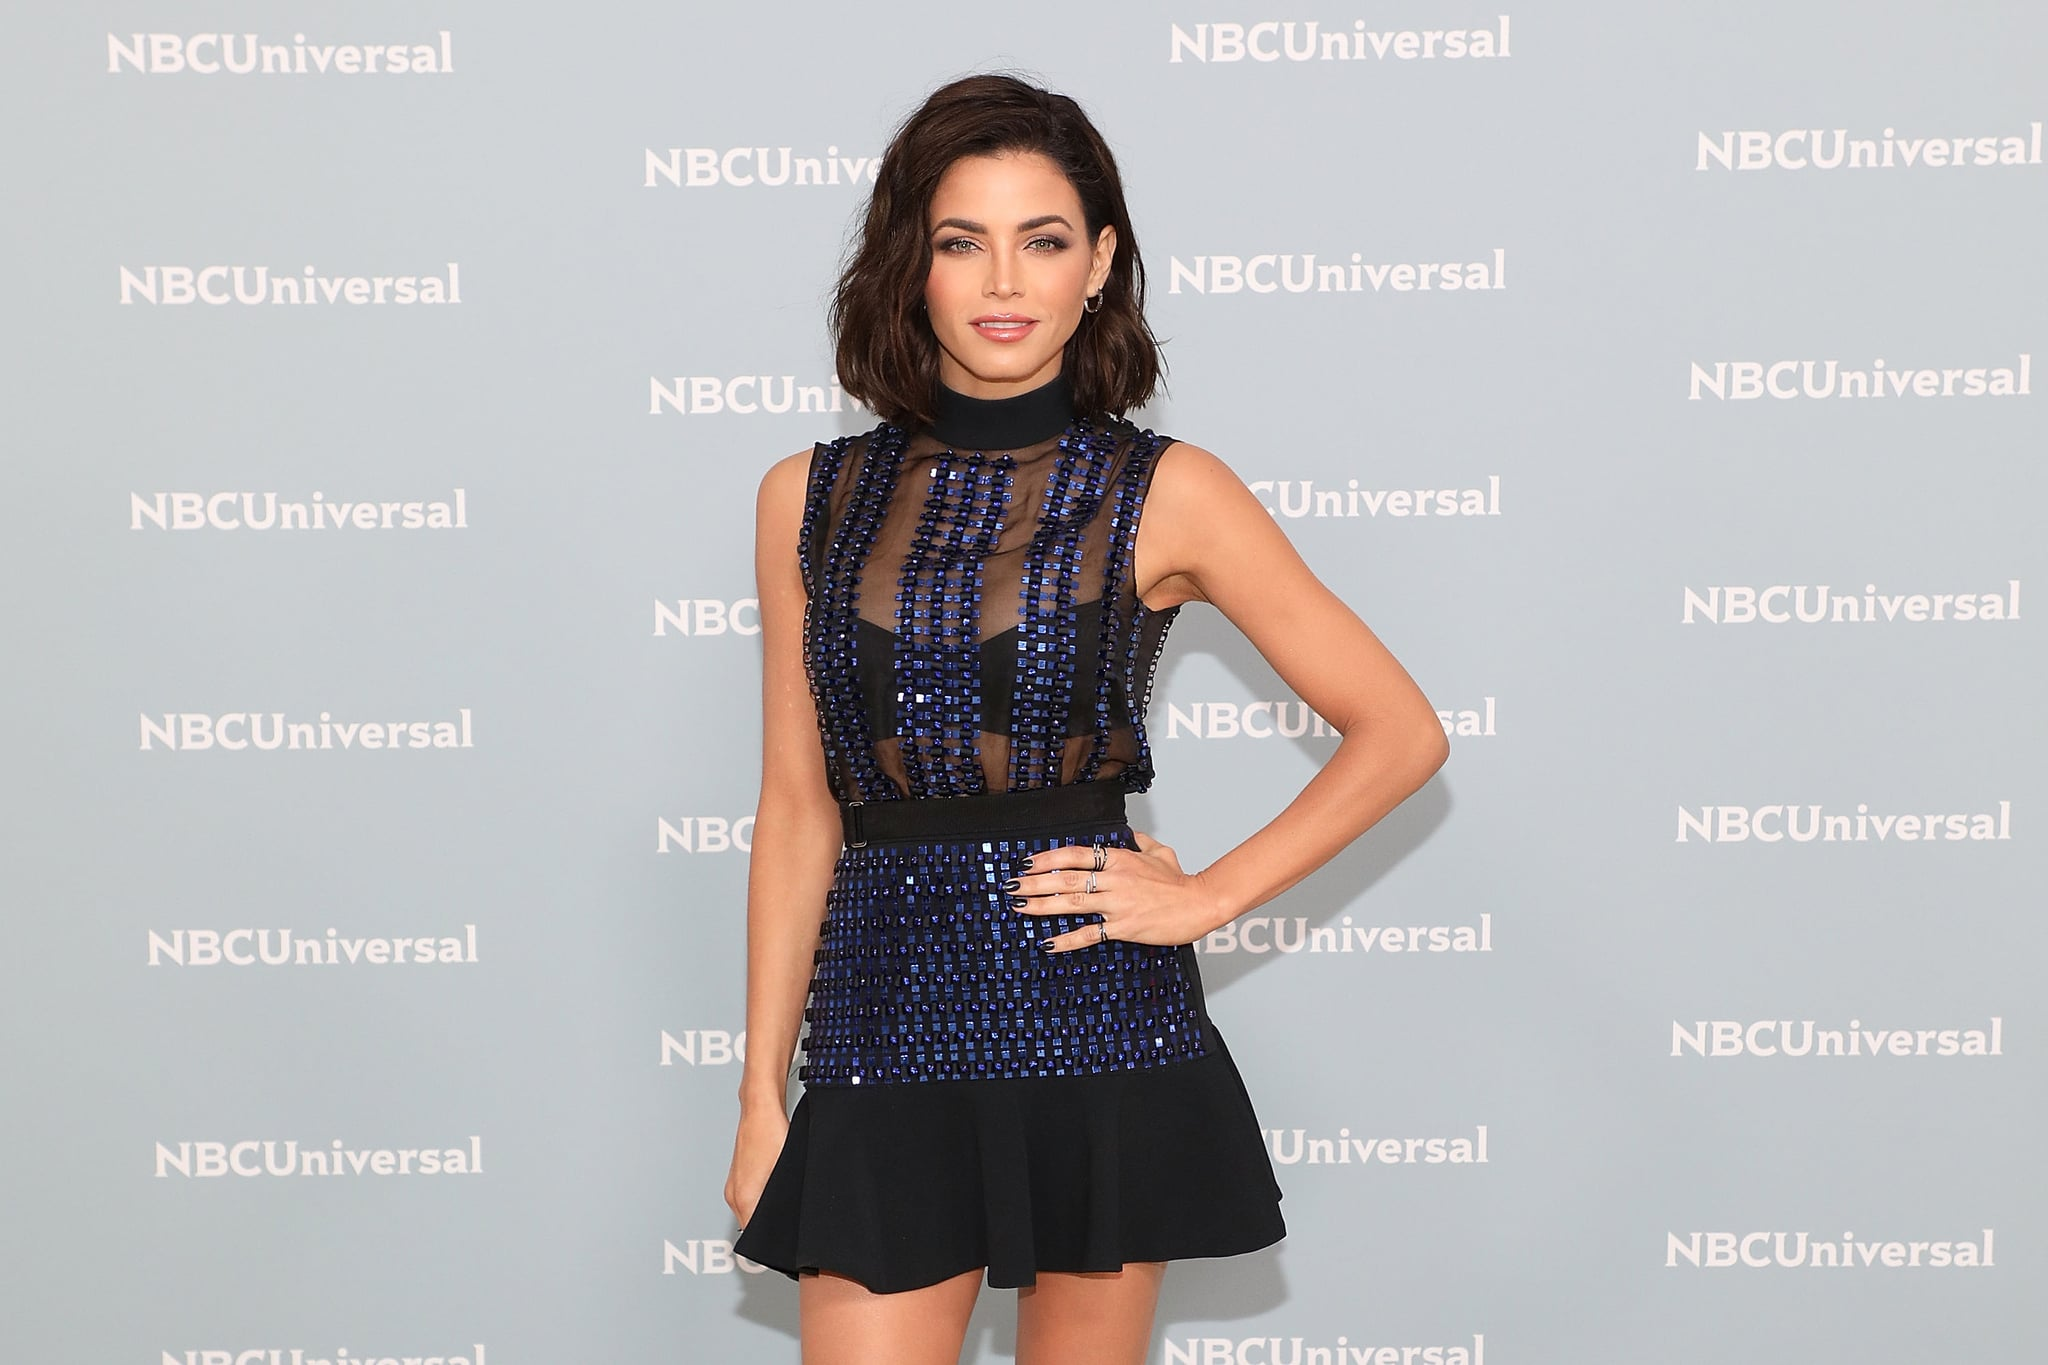 NEW YORK, NY - MAY 14:  Jenna Dewan attends the 2018 NBCUniversal Upfront Presentation at Rockefeller Centre on May 14, 2018 in New York City.  (Photo by Taylor Hill/FilmMagic)